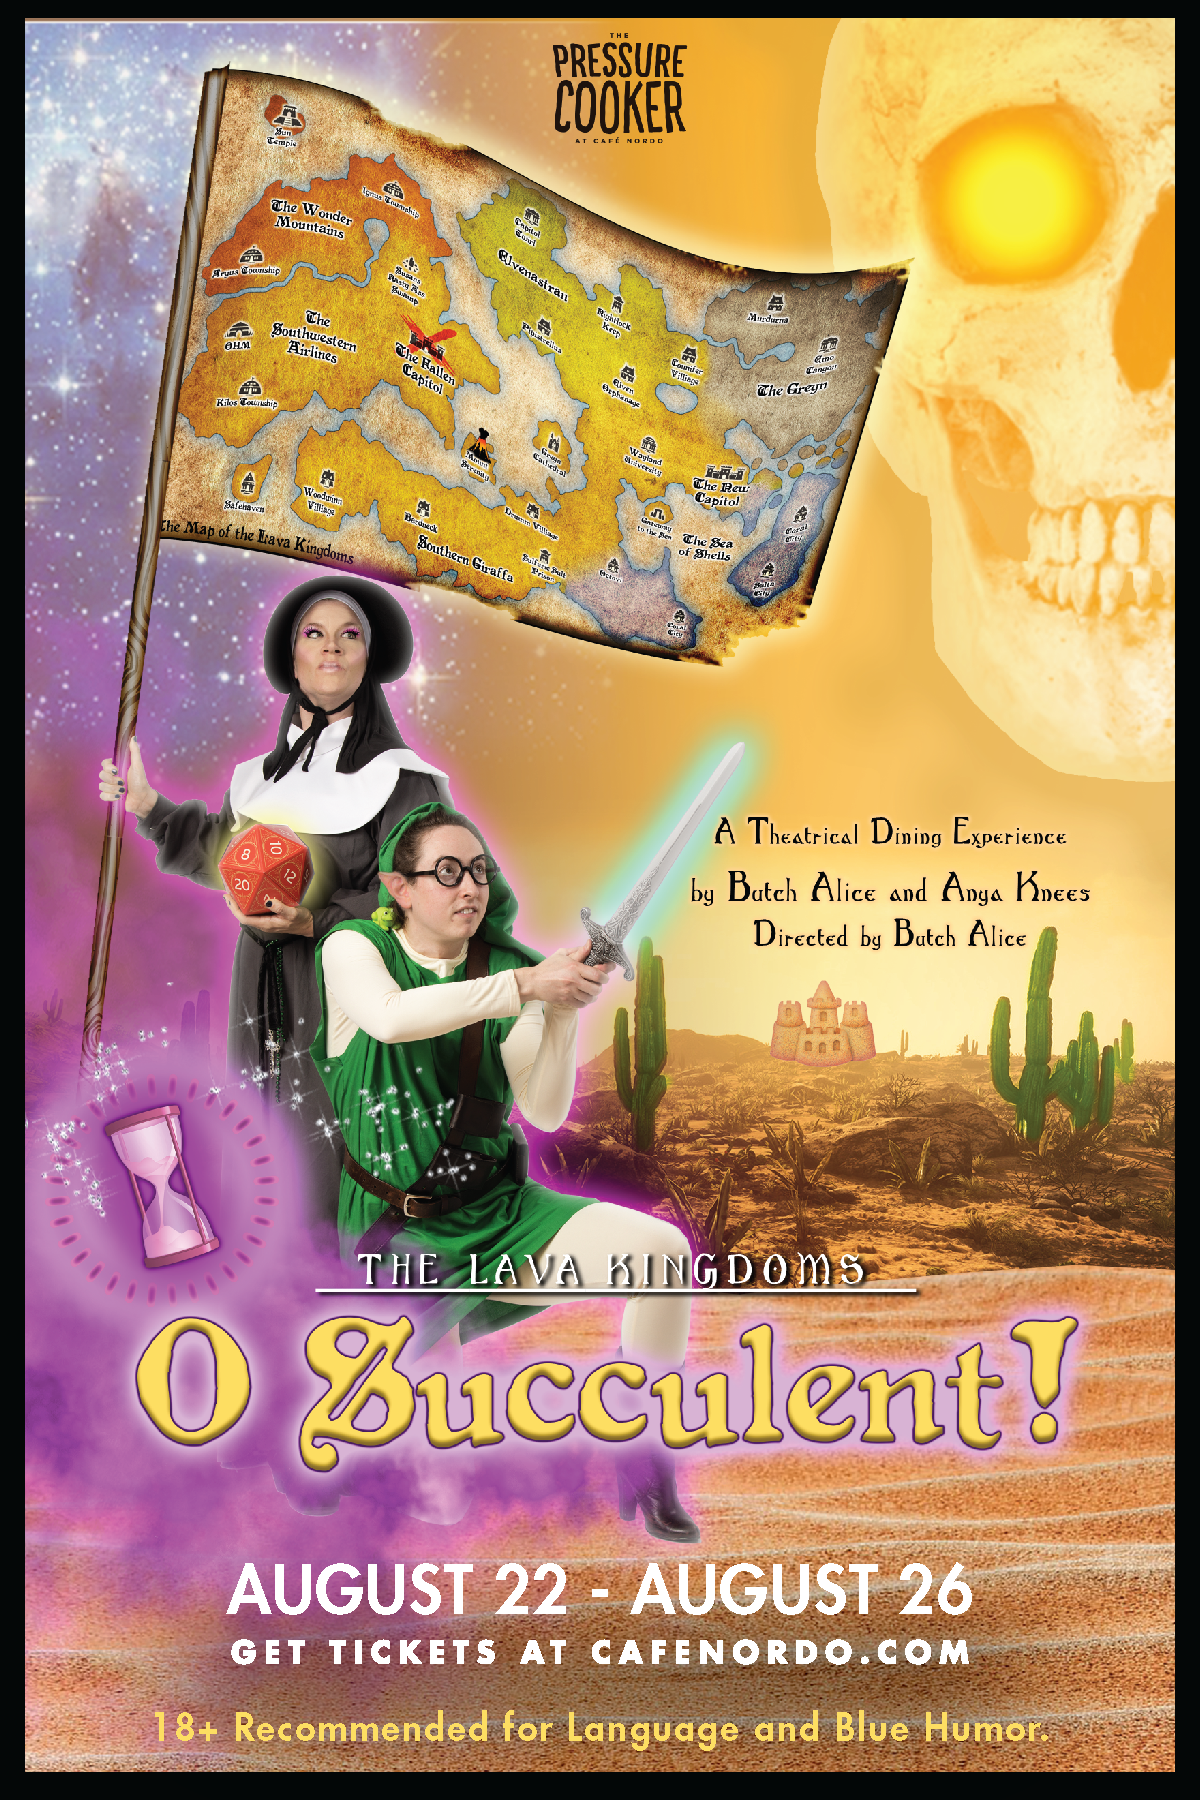 O Succulent! (2019) | In a live-acting homage to role-playing games, Professor Archie McDinklethorn and Sister Sandwich travel from the relatively safe confines of the Waylan School of Botany and Herbalism into the quicksands of the The Southern Giraffa Desert, in search of succulent plants and accompanying adventure. Written by Butch Alice + Anya Knees and Directed by Butch Alice.